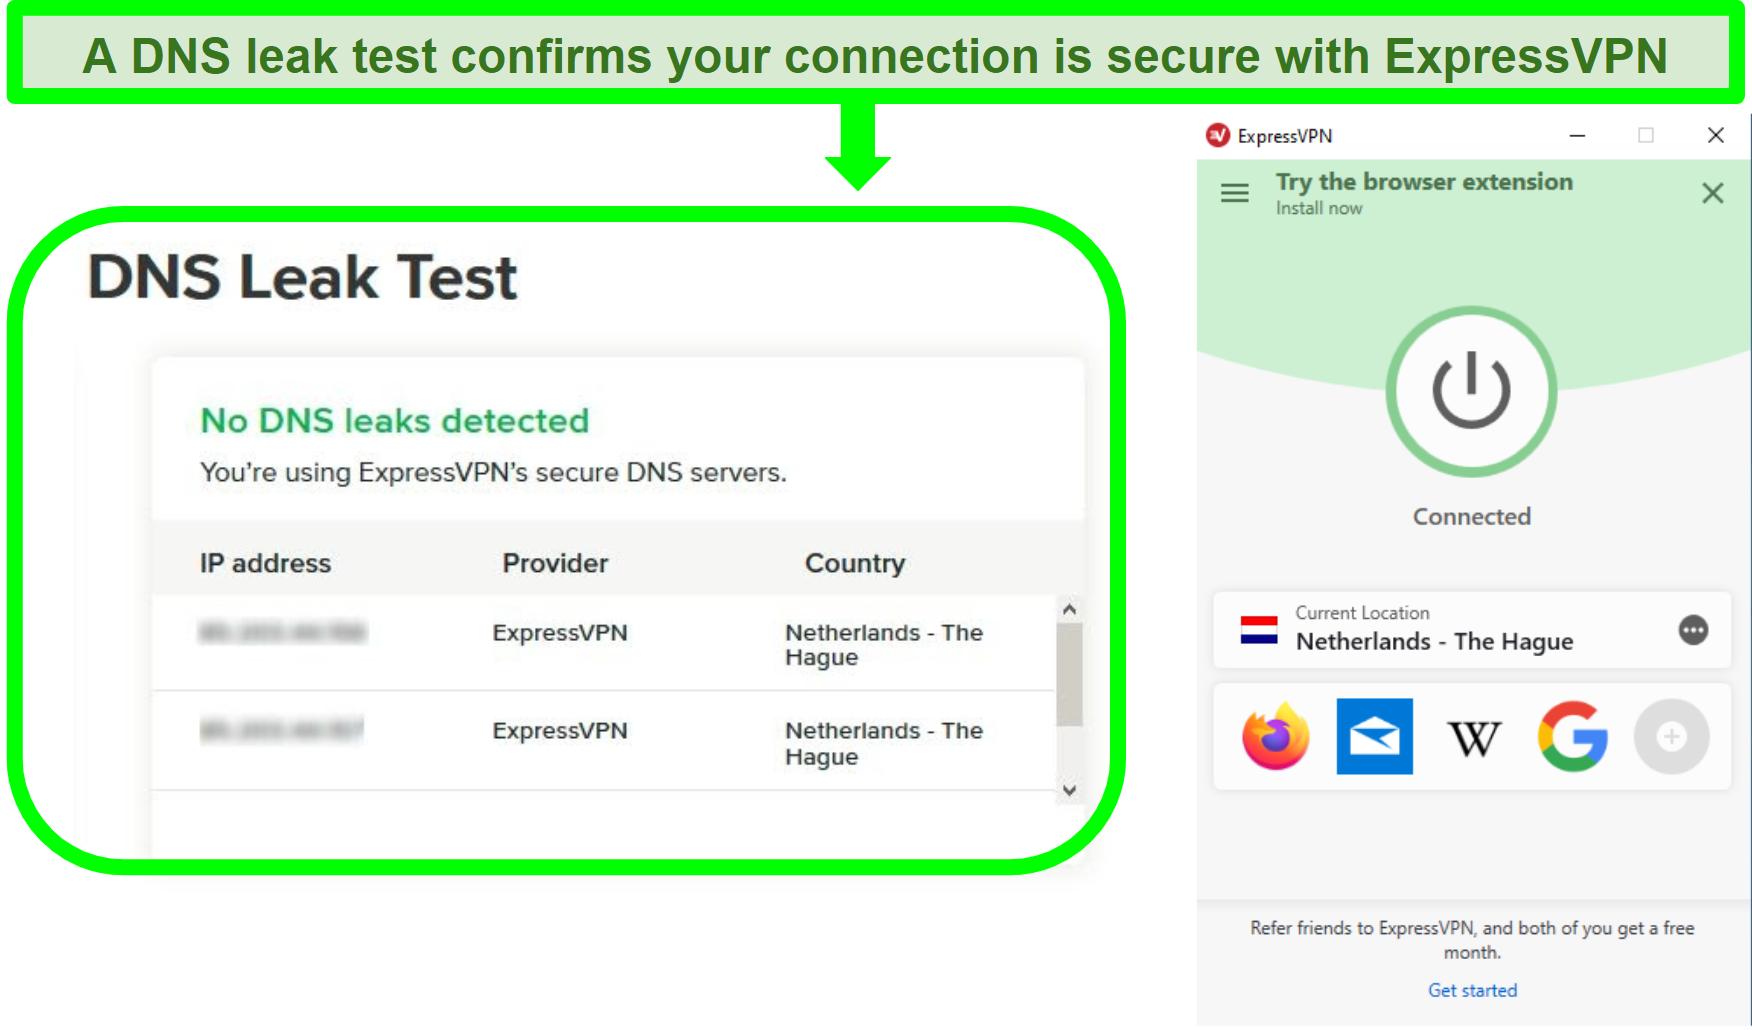 Screenshot of a DNS leak test while ExpressVPN is connected to a server in the Netherlands